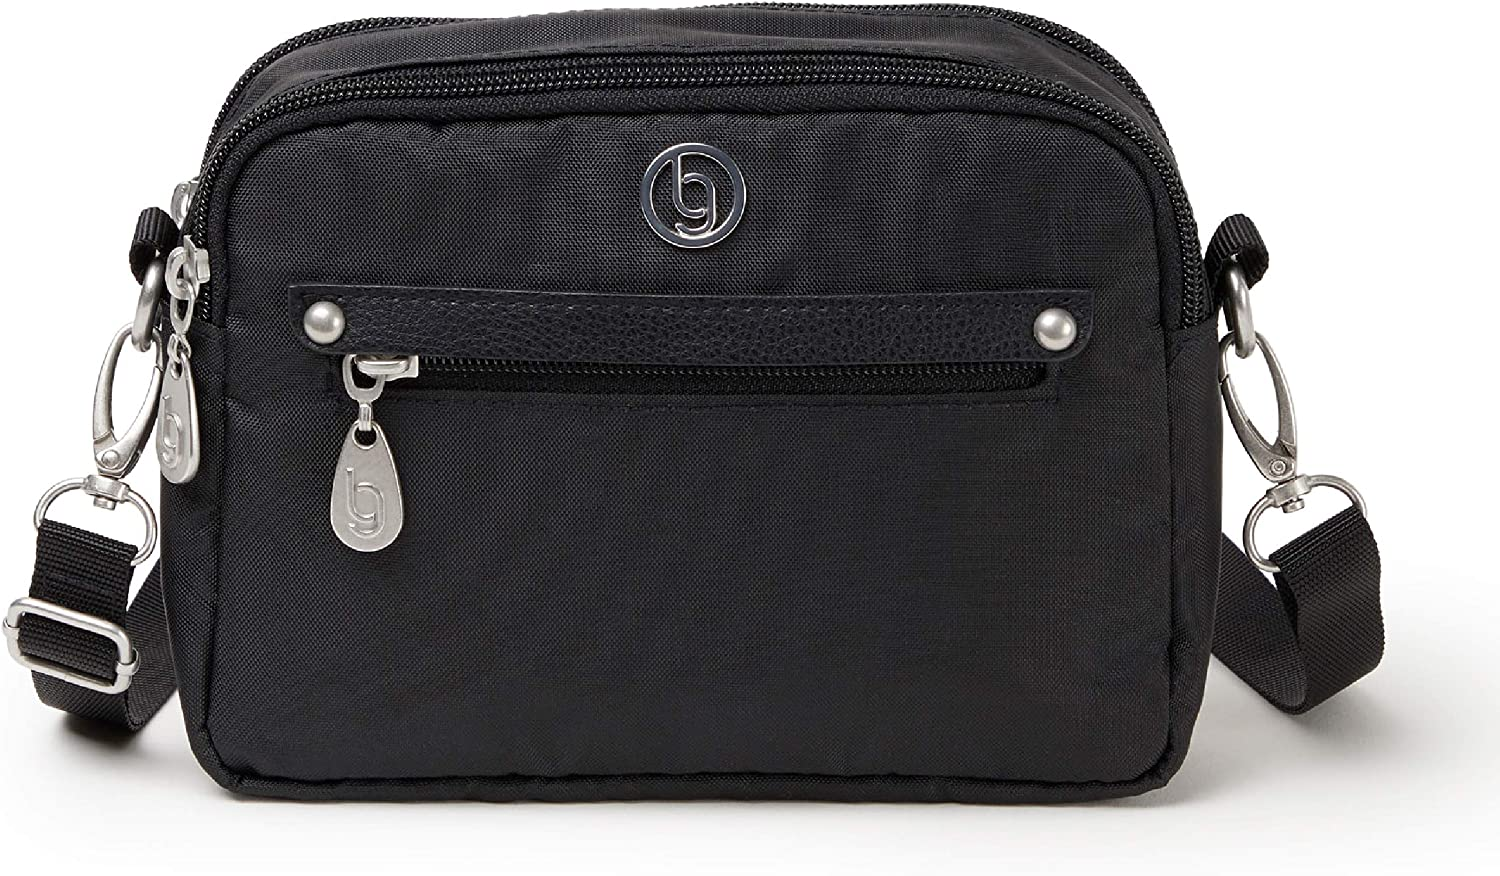 BG by Baggallini Oakland Crossbody Bag